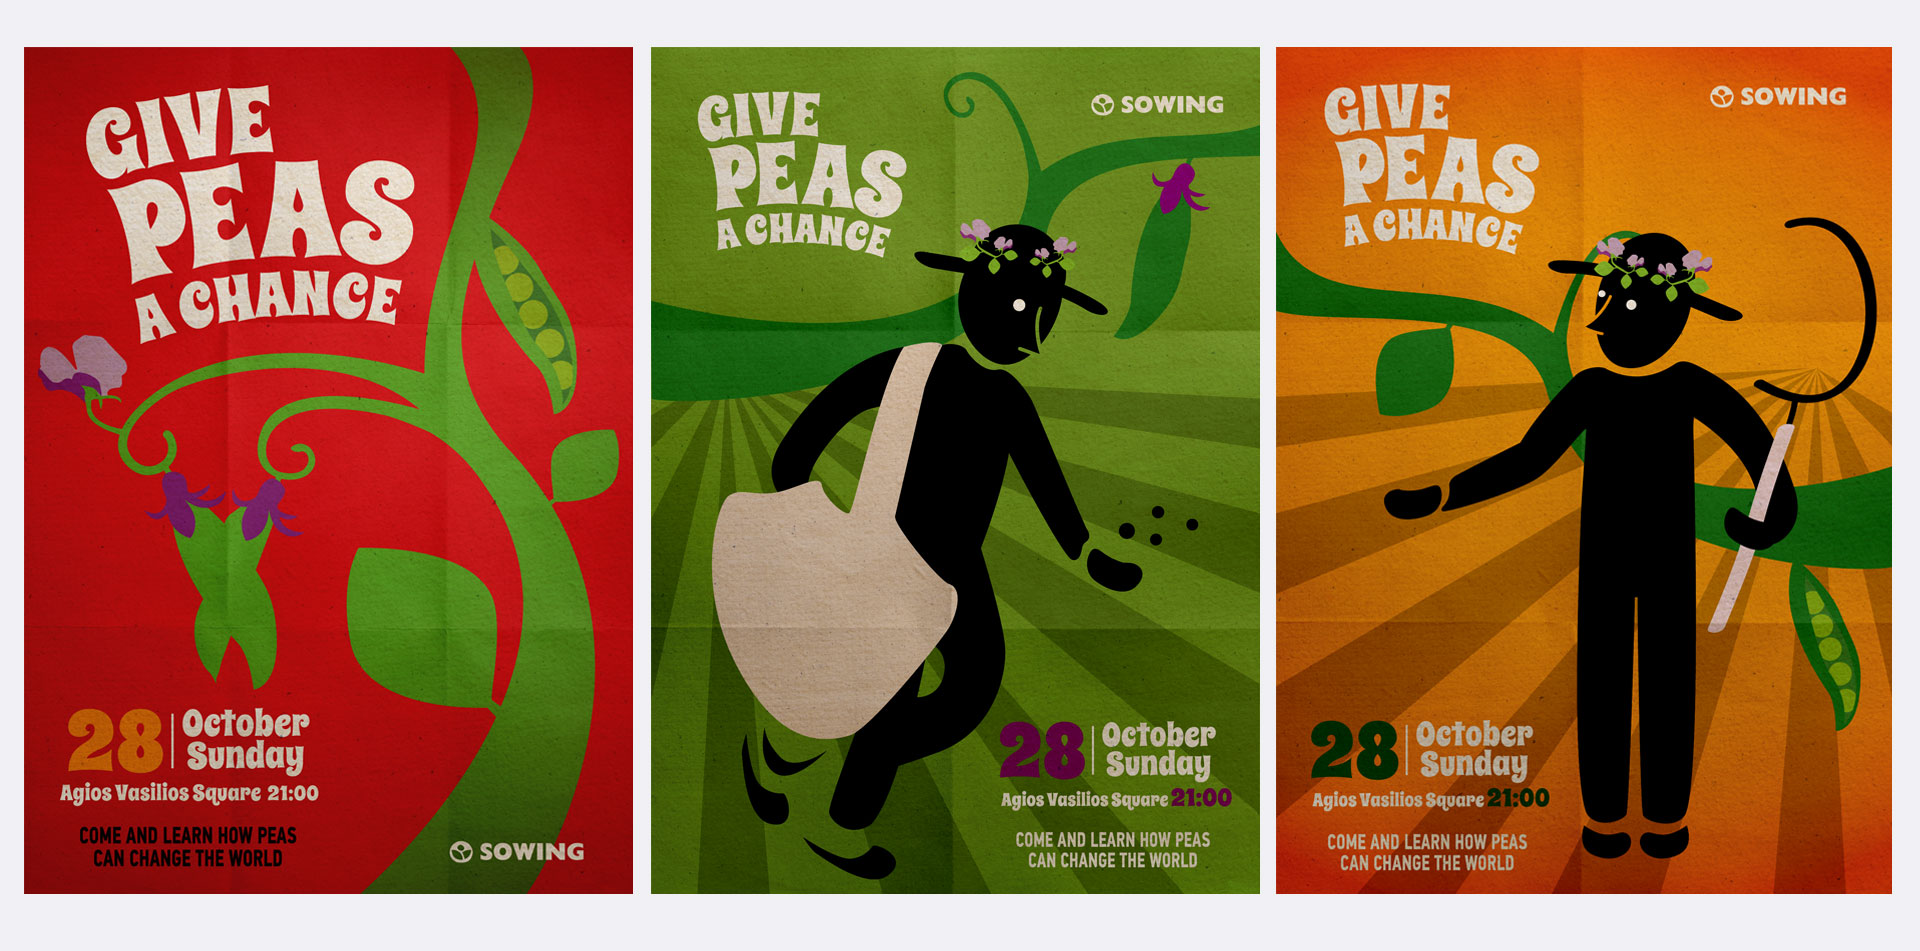 posters give peas a chance